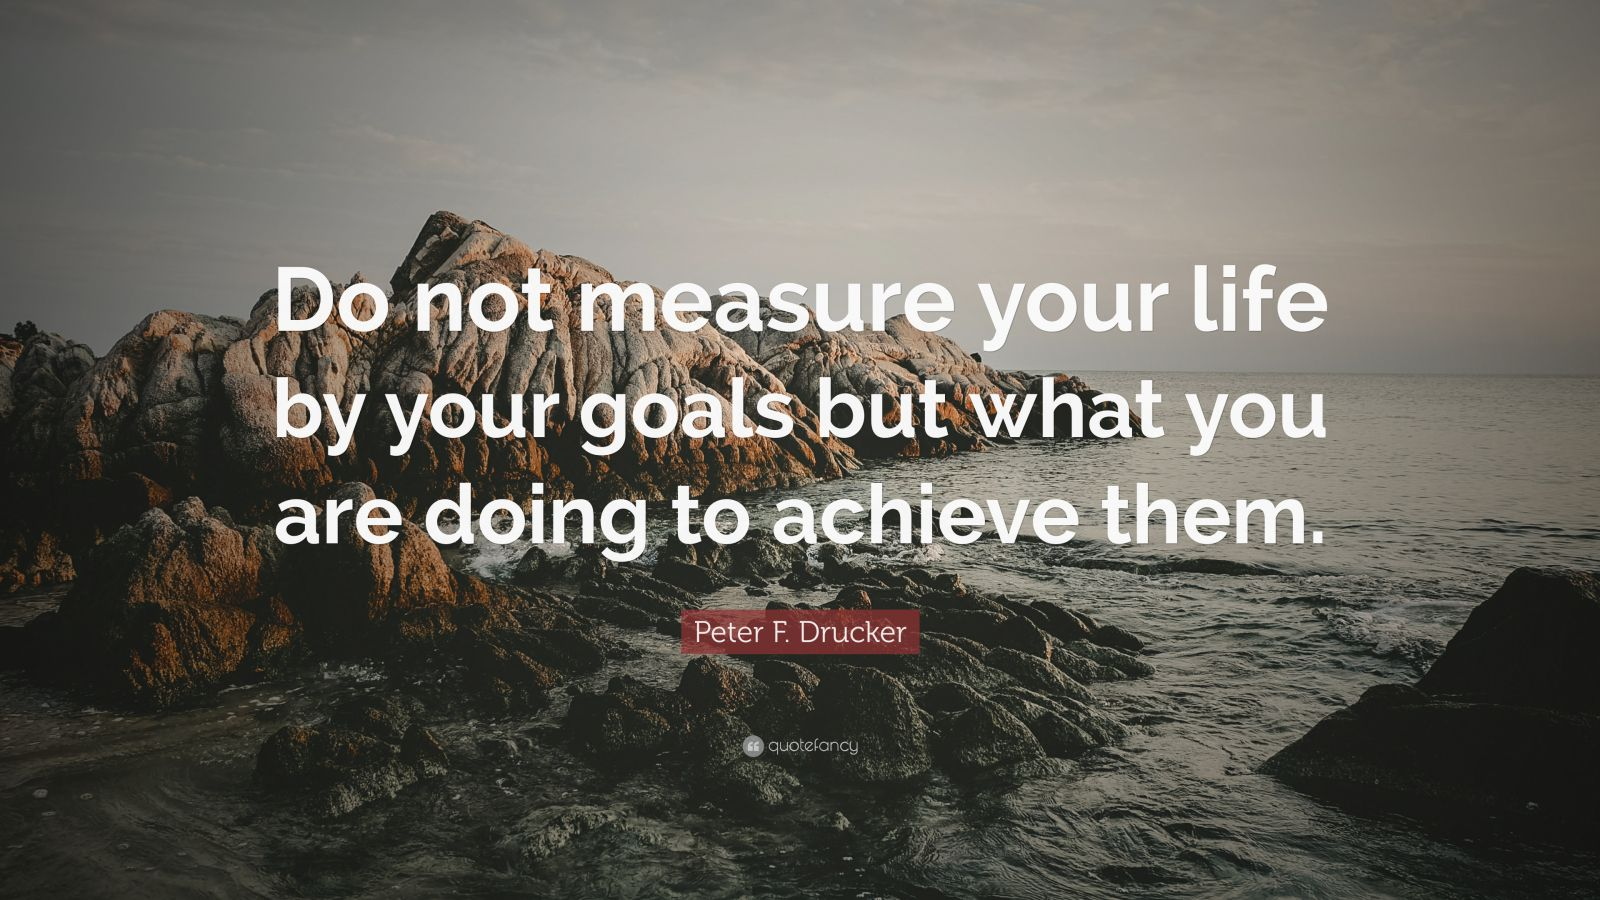 """Peter F. Drucker Quote: """"Do not measure your life by your goals but what you are doing to achieve them."""""""